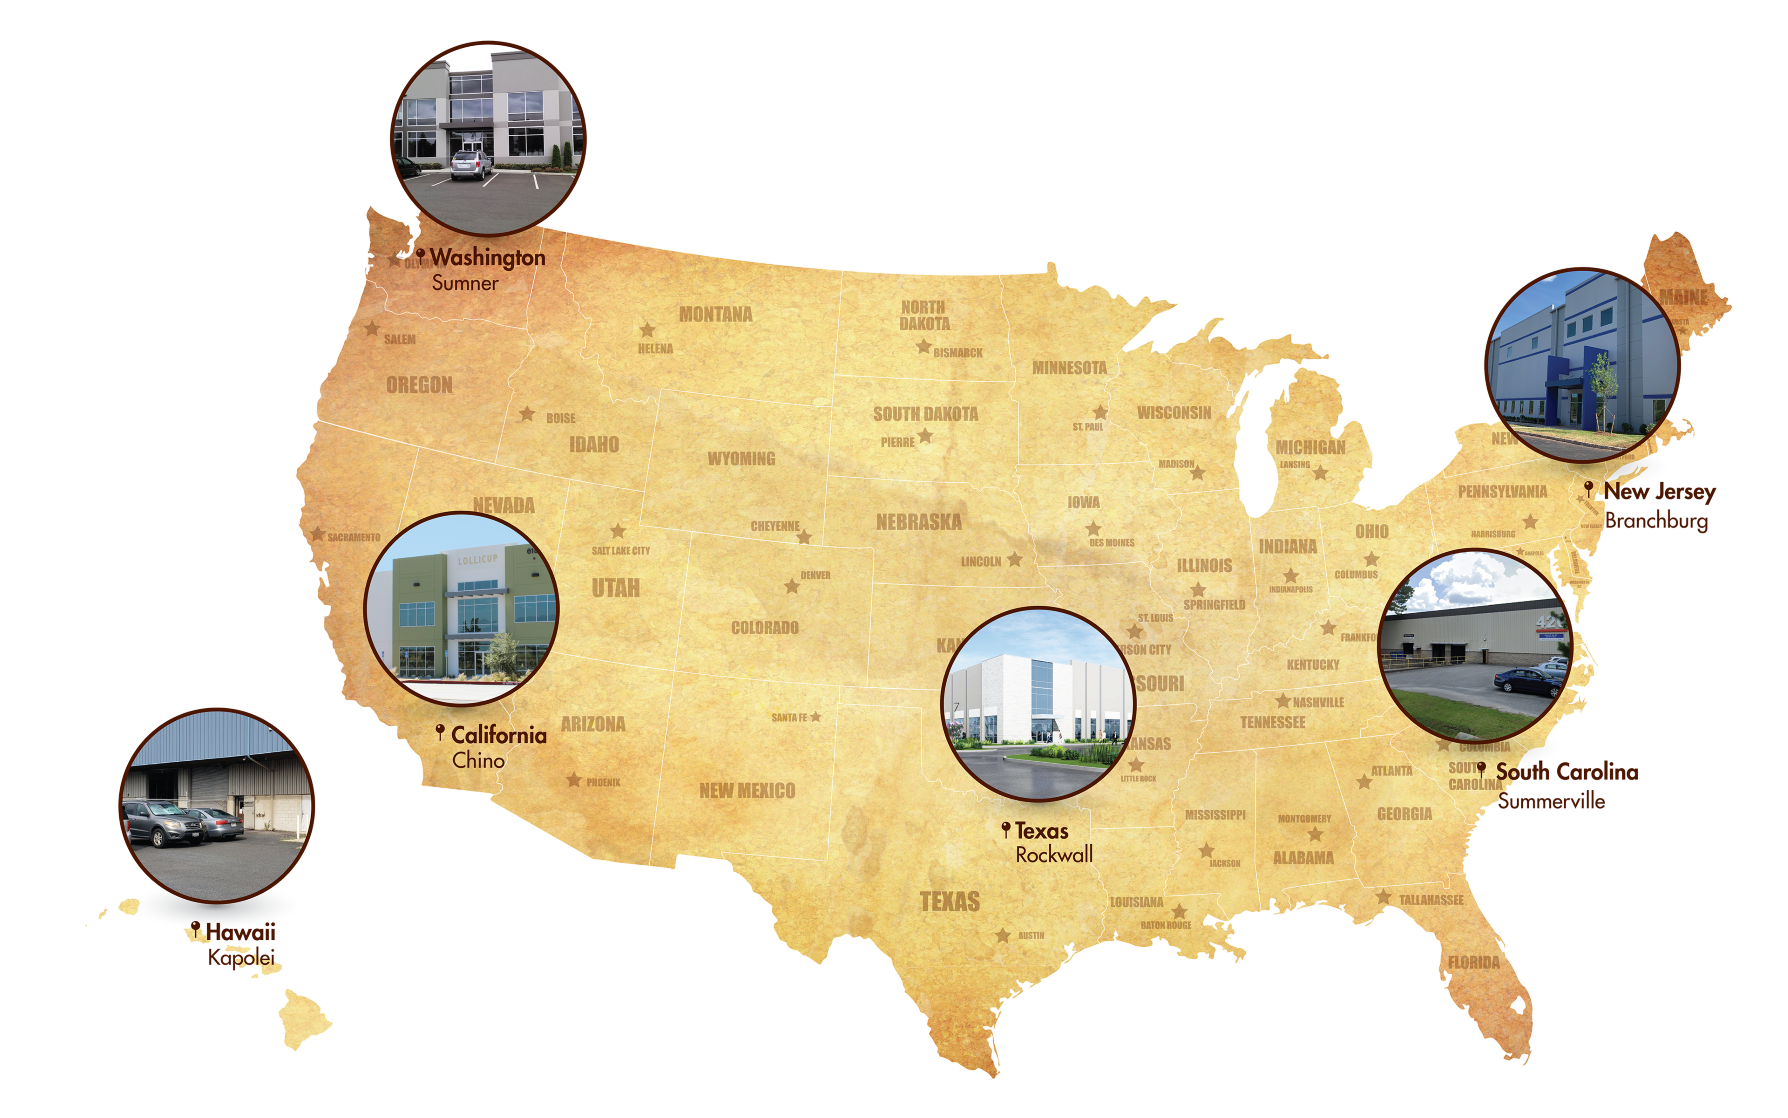 US Map of warehouse locations